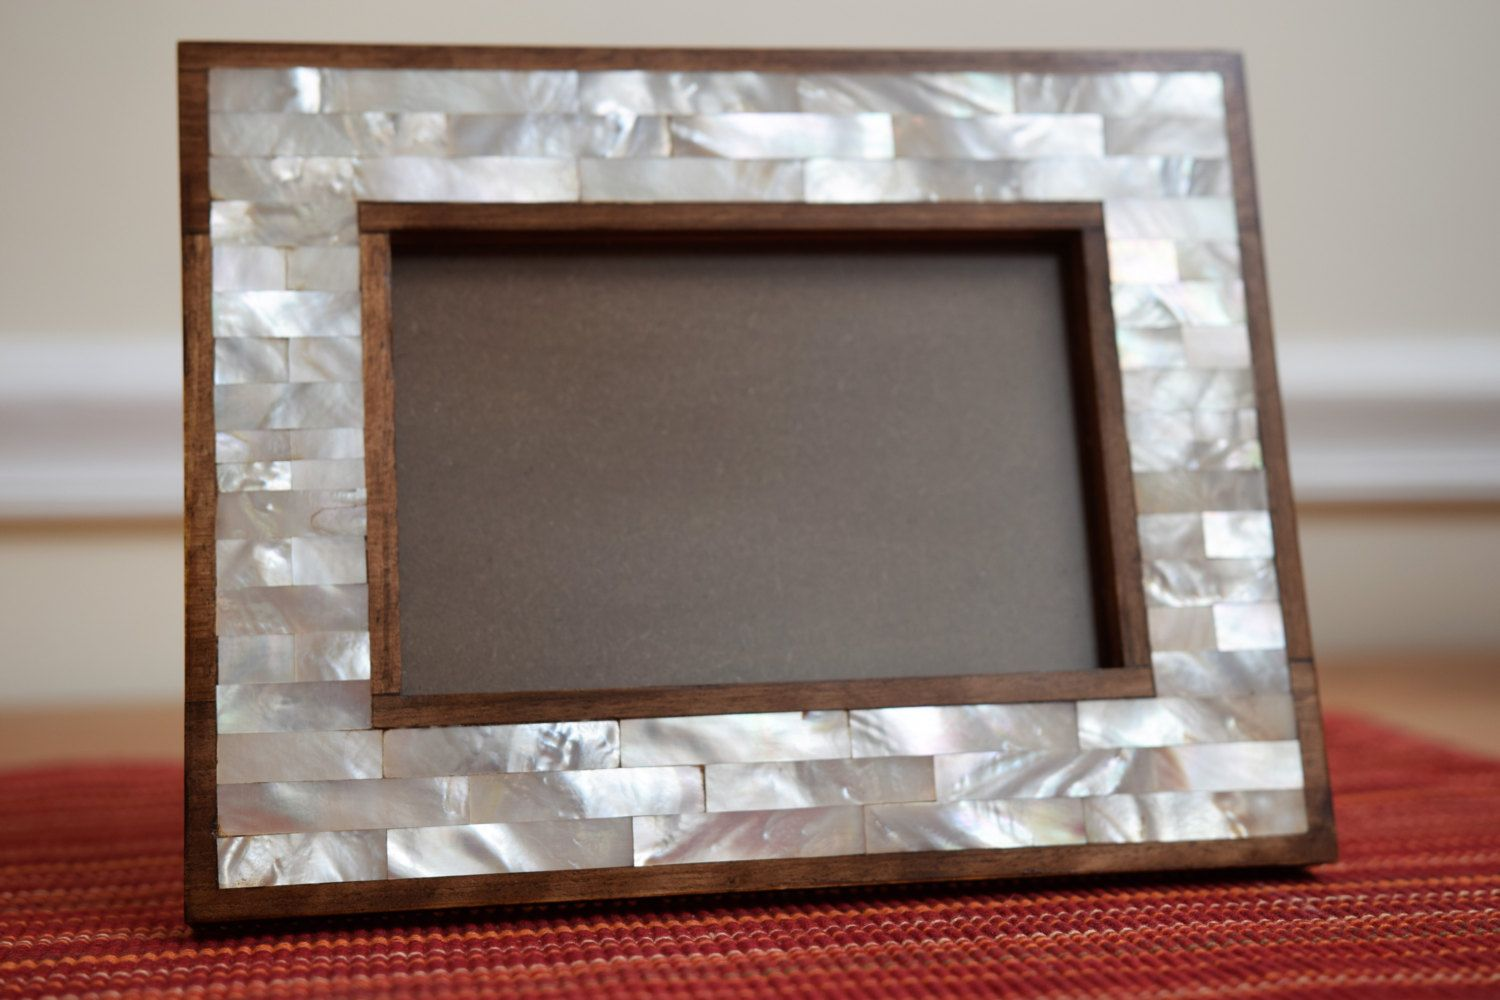 Inlaid Wood Frame S Wood Inlay Art Picture Frame Photo Frame Home Decor Handmade Photo Frames Photo Frame Crafts Wood Inlay